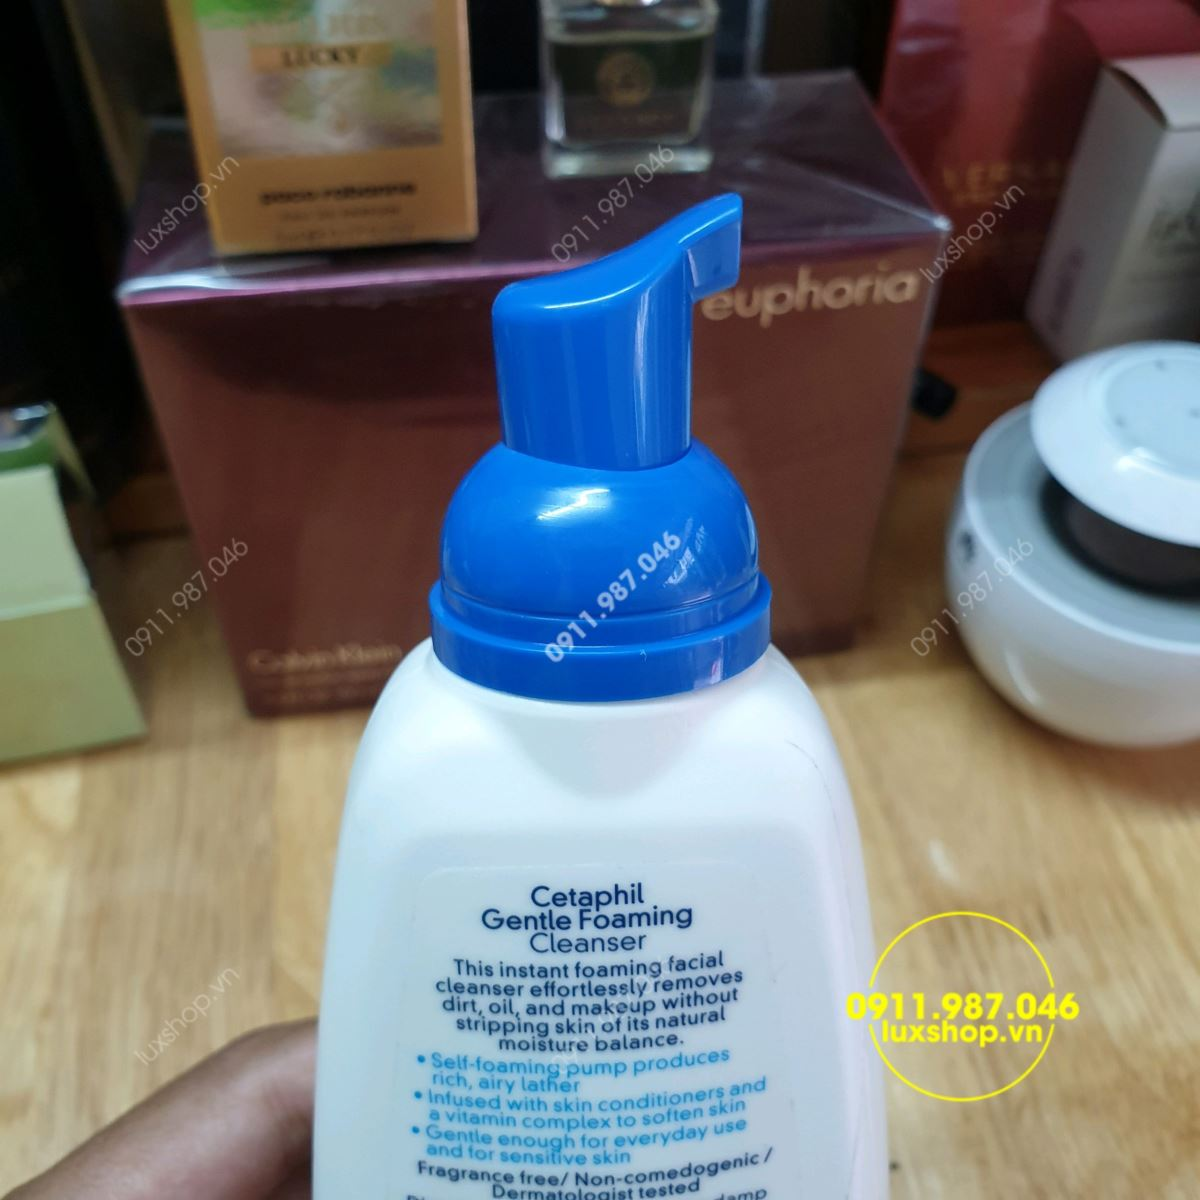 Cetaphil Gentle Foaming Cleanser 236ml - luxshop.vn